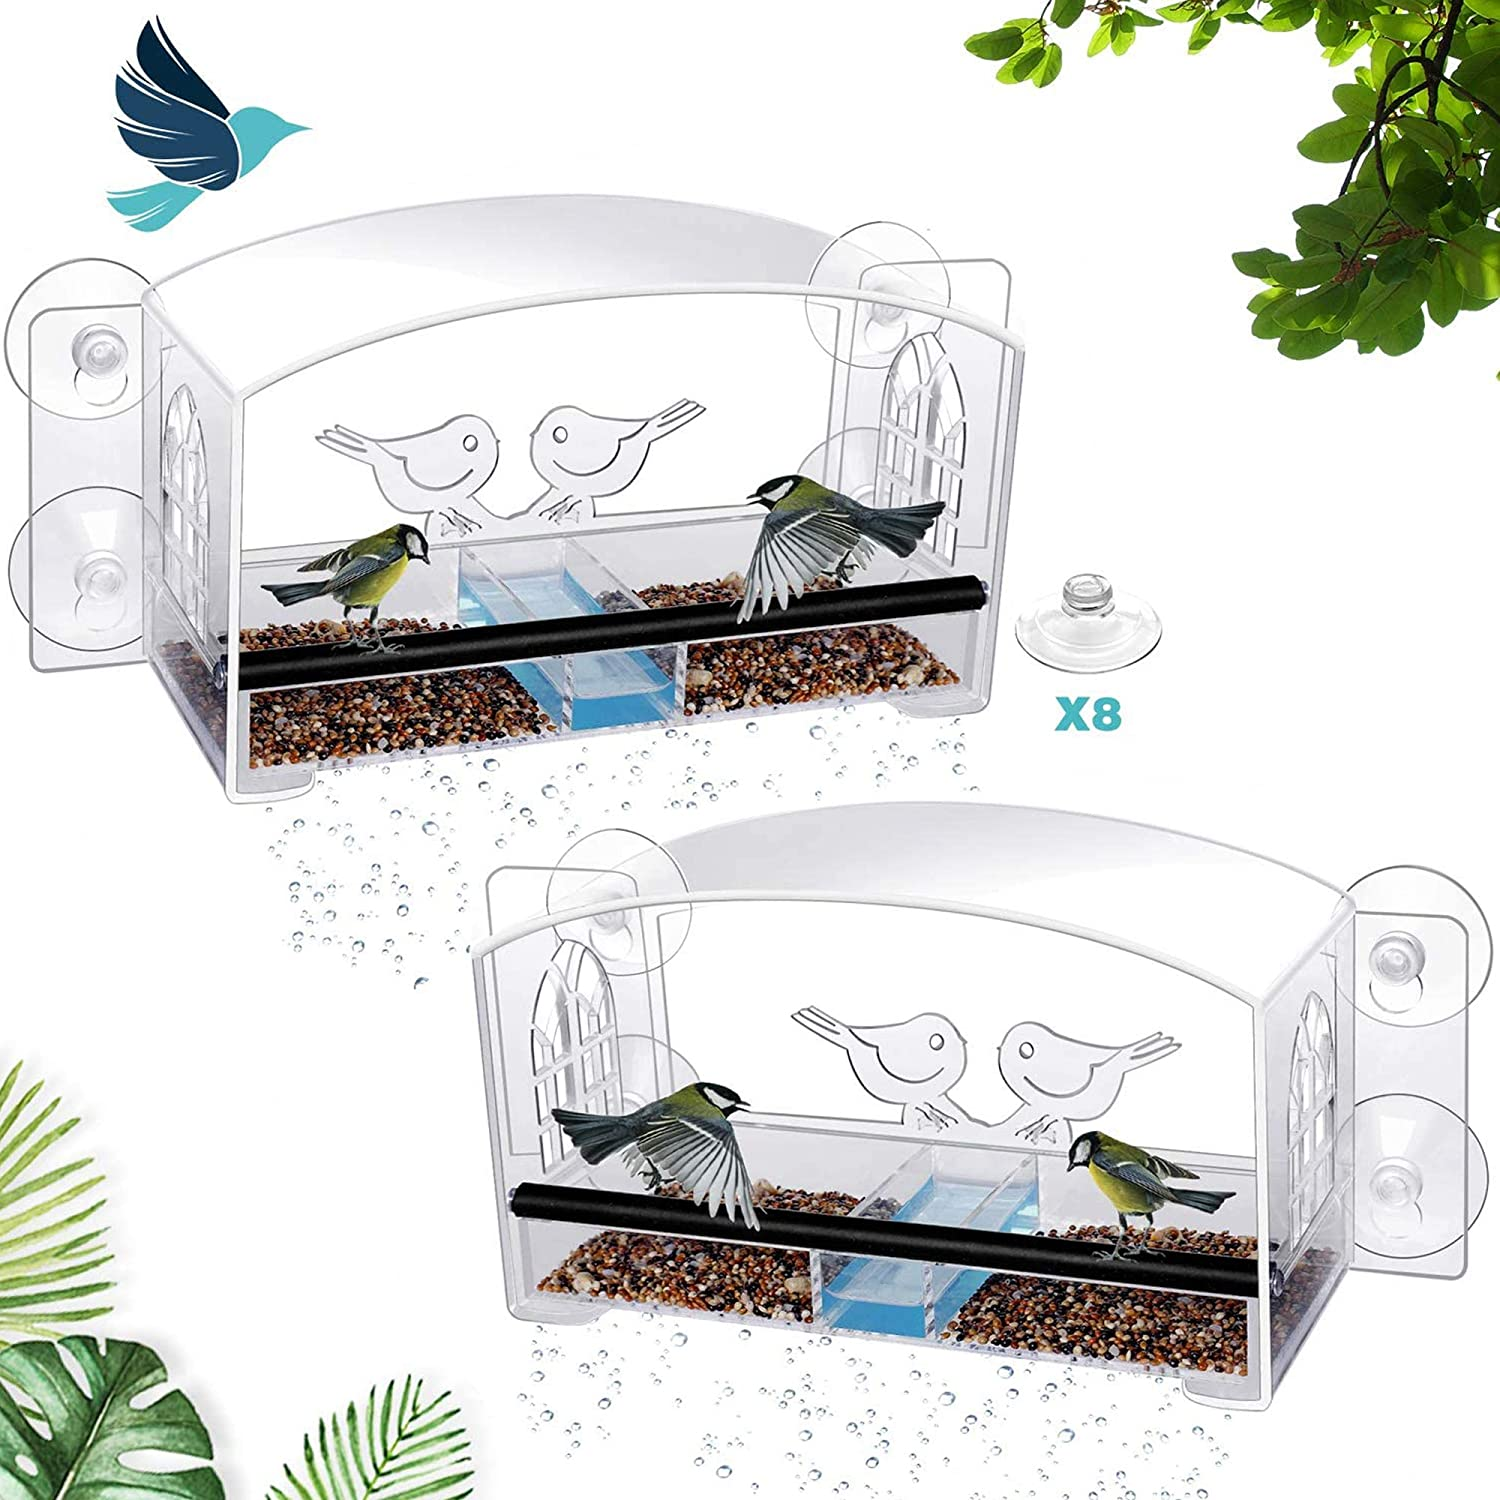 MIXXIDEA Clear Window Bird Feeder with Refillable Acrylic Sliding Seed Tray Holder with Drain Holes, Super Strong Suction Cups , Transparent Viewing Outside Hanging Kit for Wild Birds(Pack of 2)